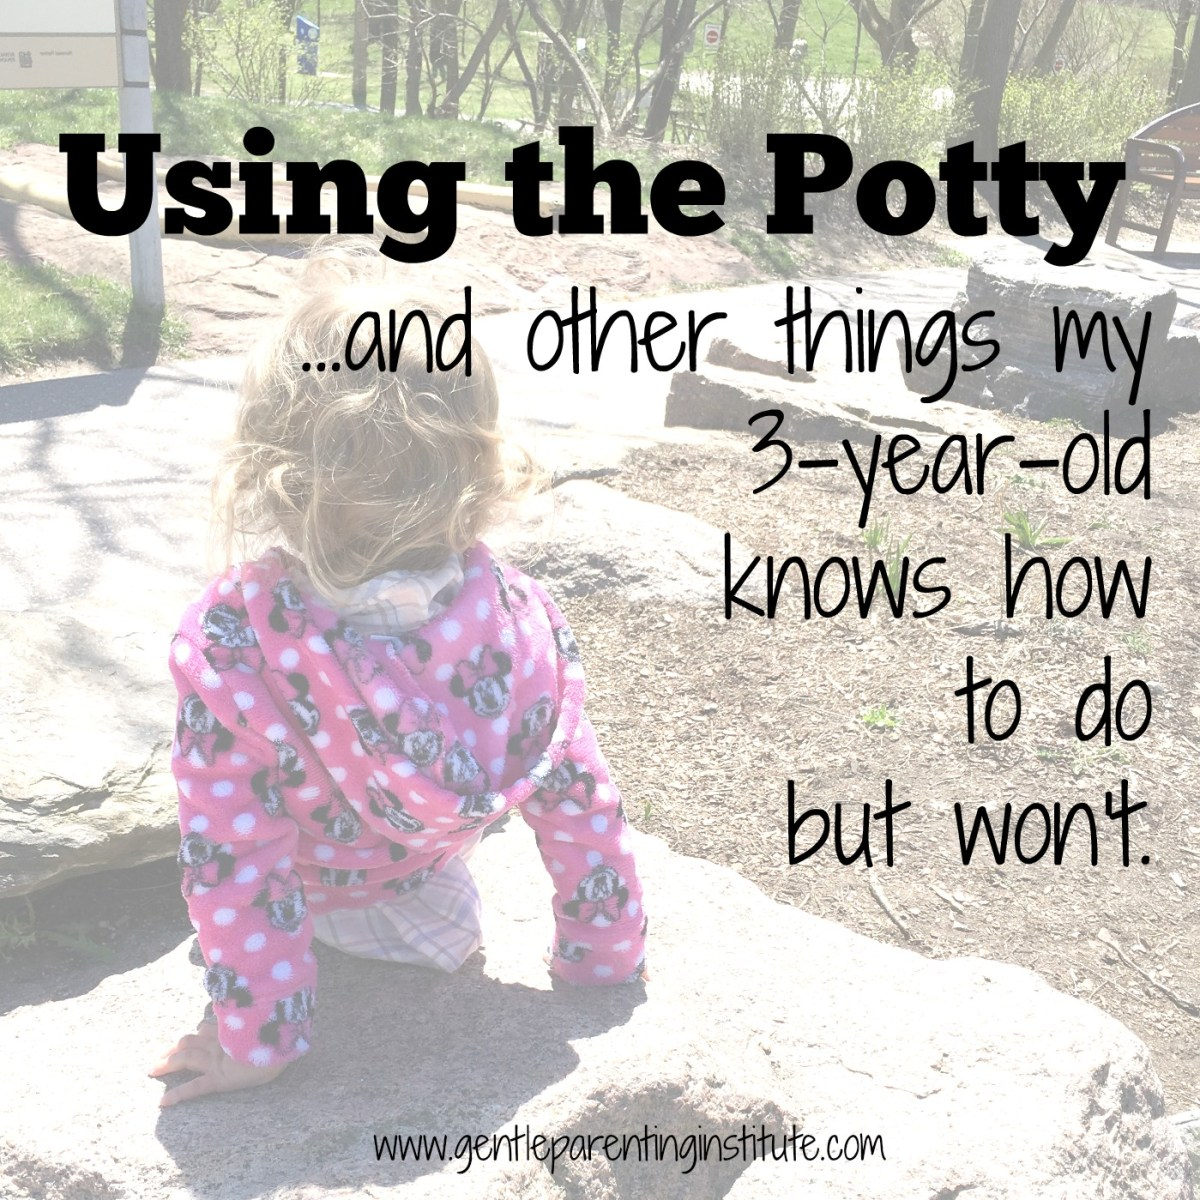 Using the Potty...and other things my 3-year-old knows how to do but won't.